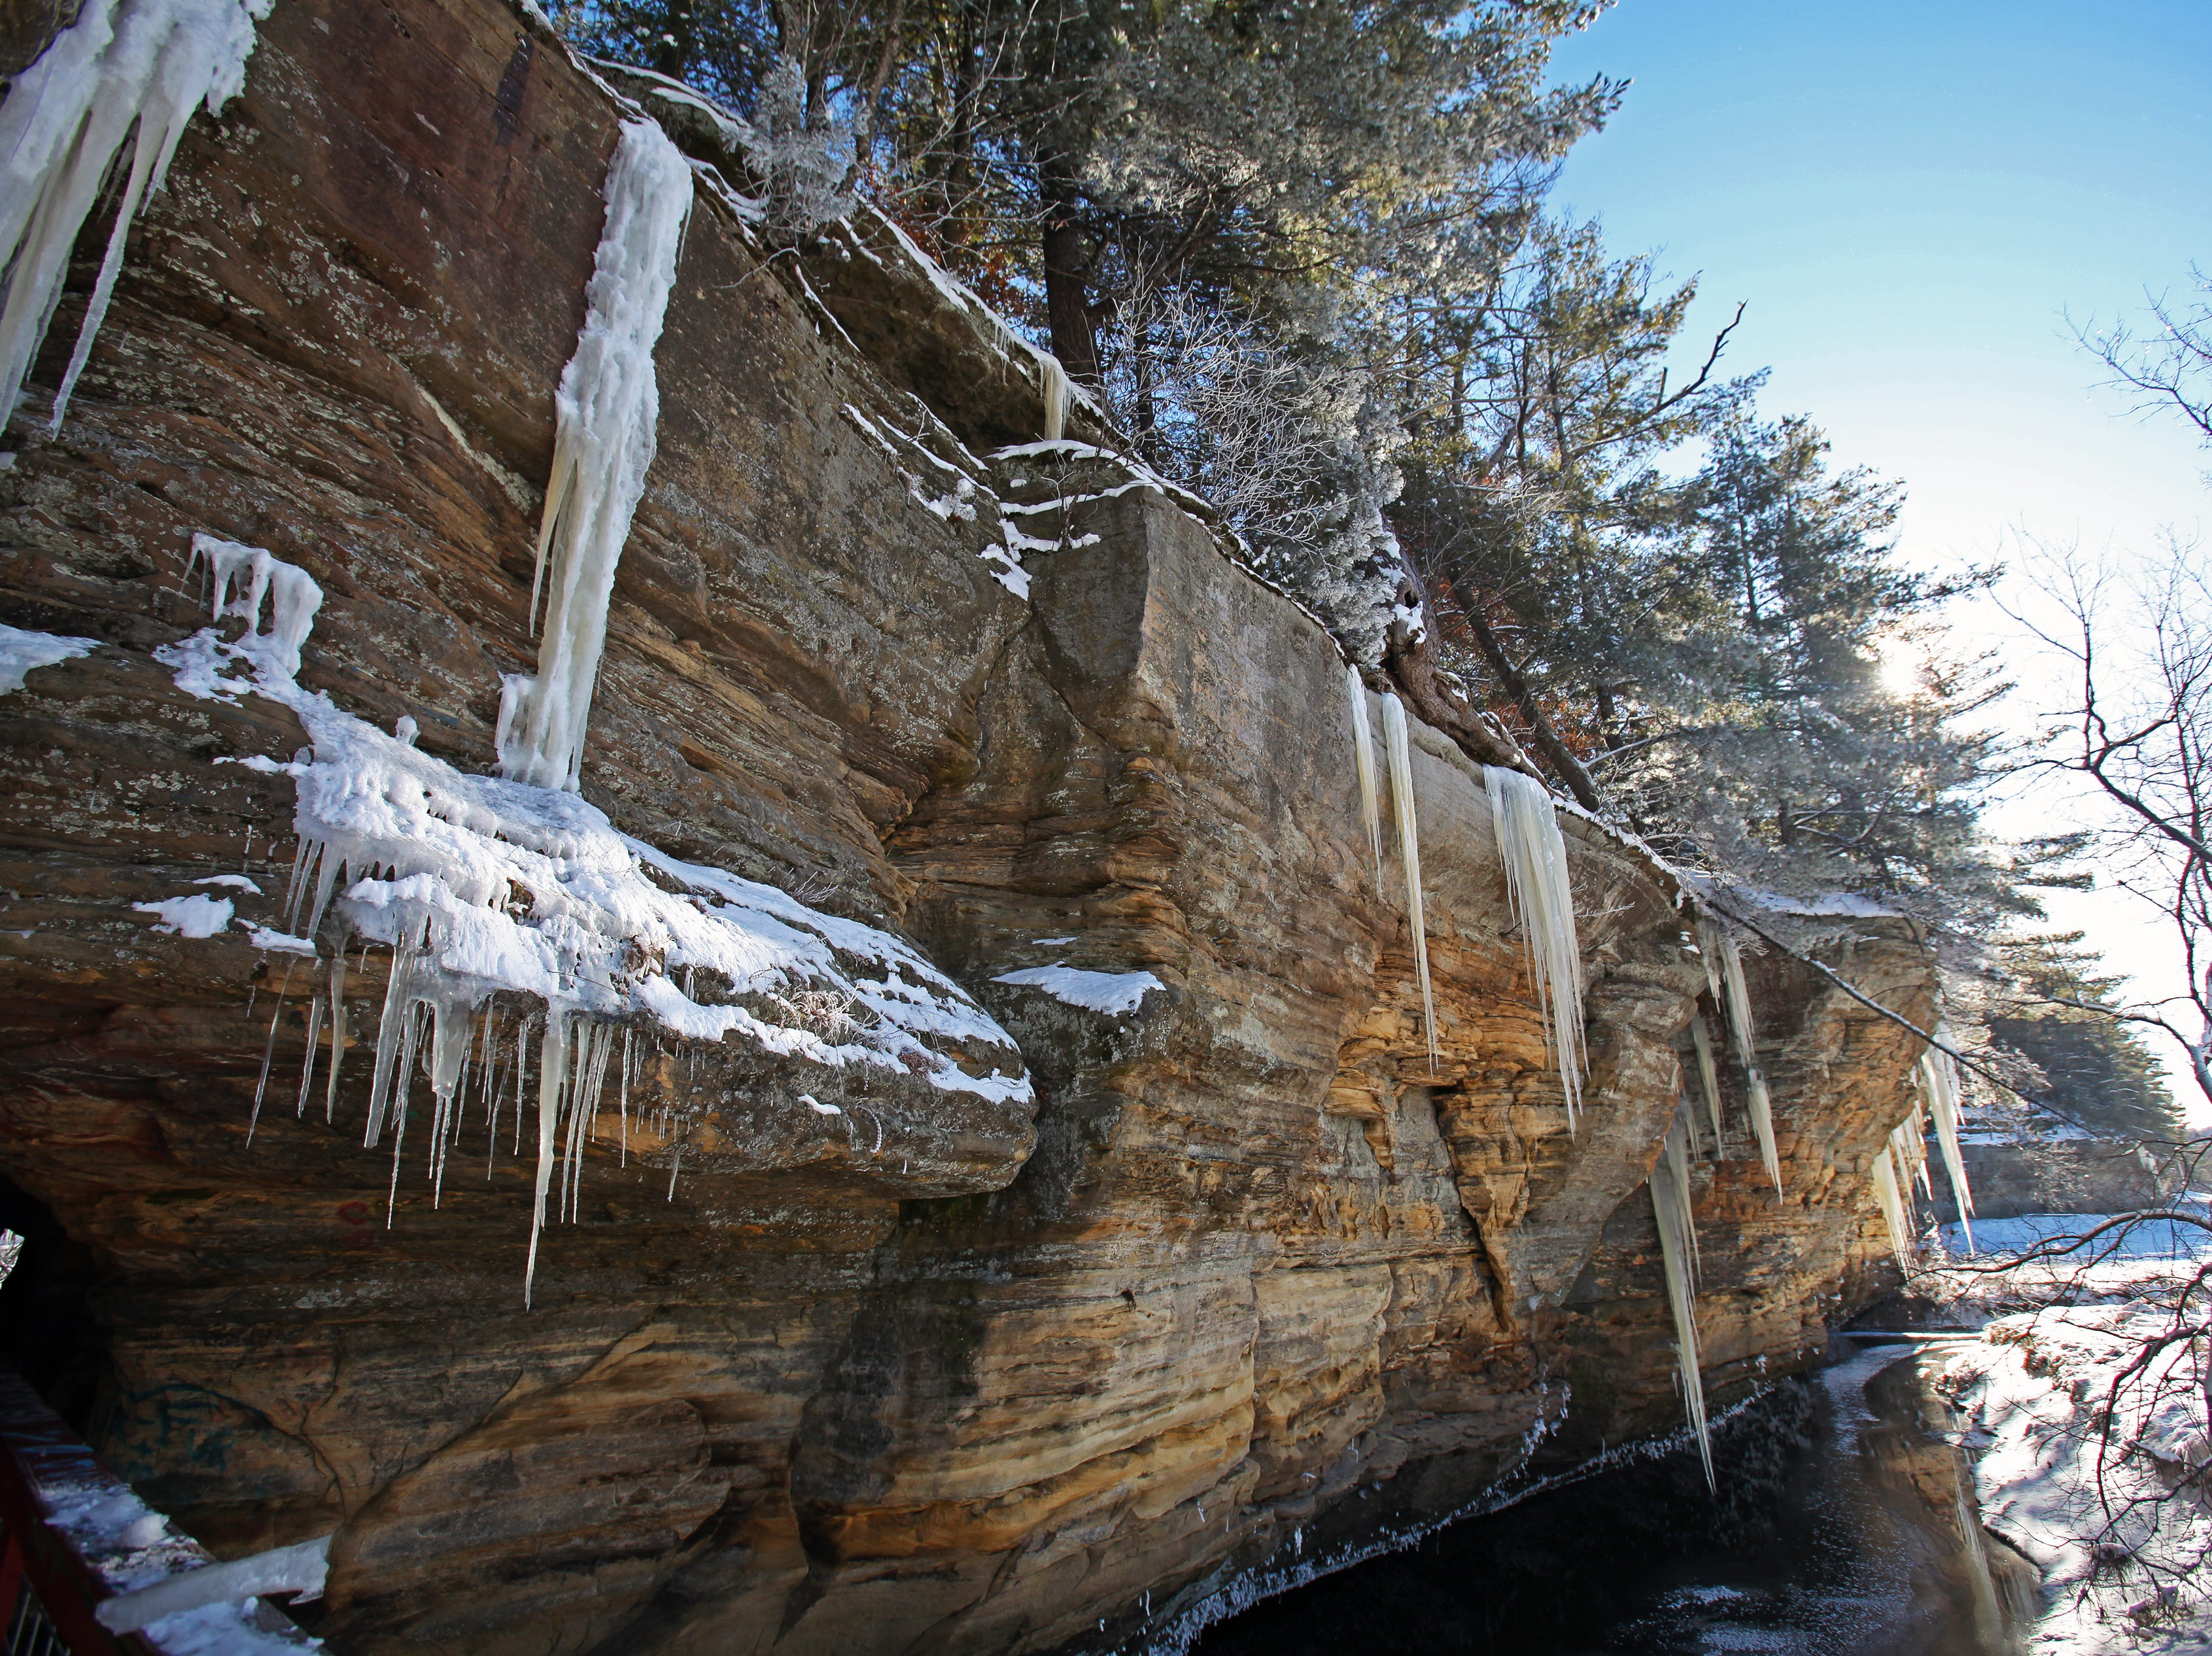 The west branch of the Pine River snakes along the edge of an icicle-laden rock formation at Pier County Park in Rockbridge.